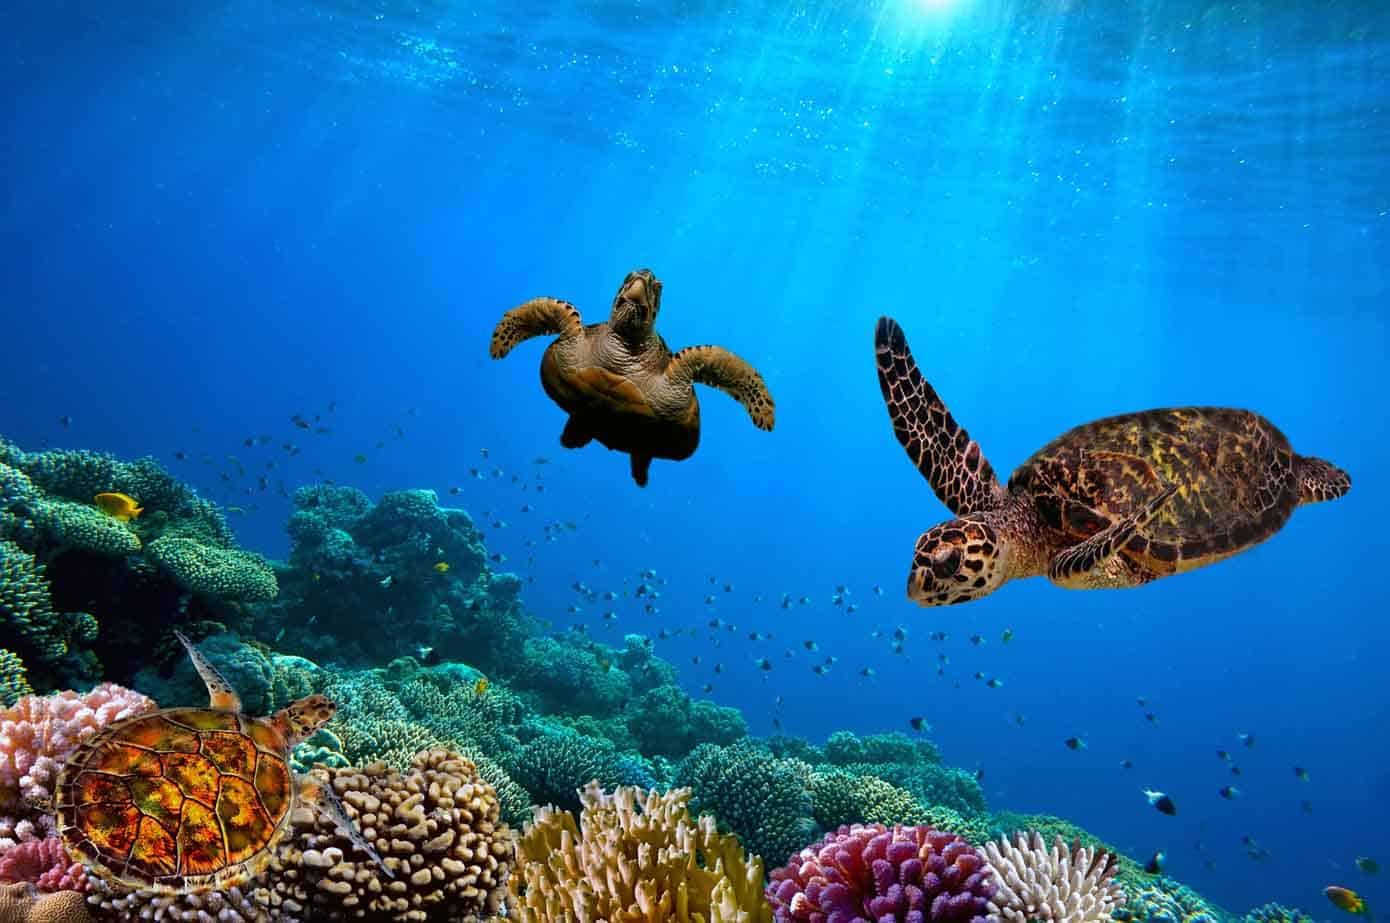 Turtles swimming underwater near a reef.